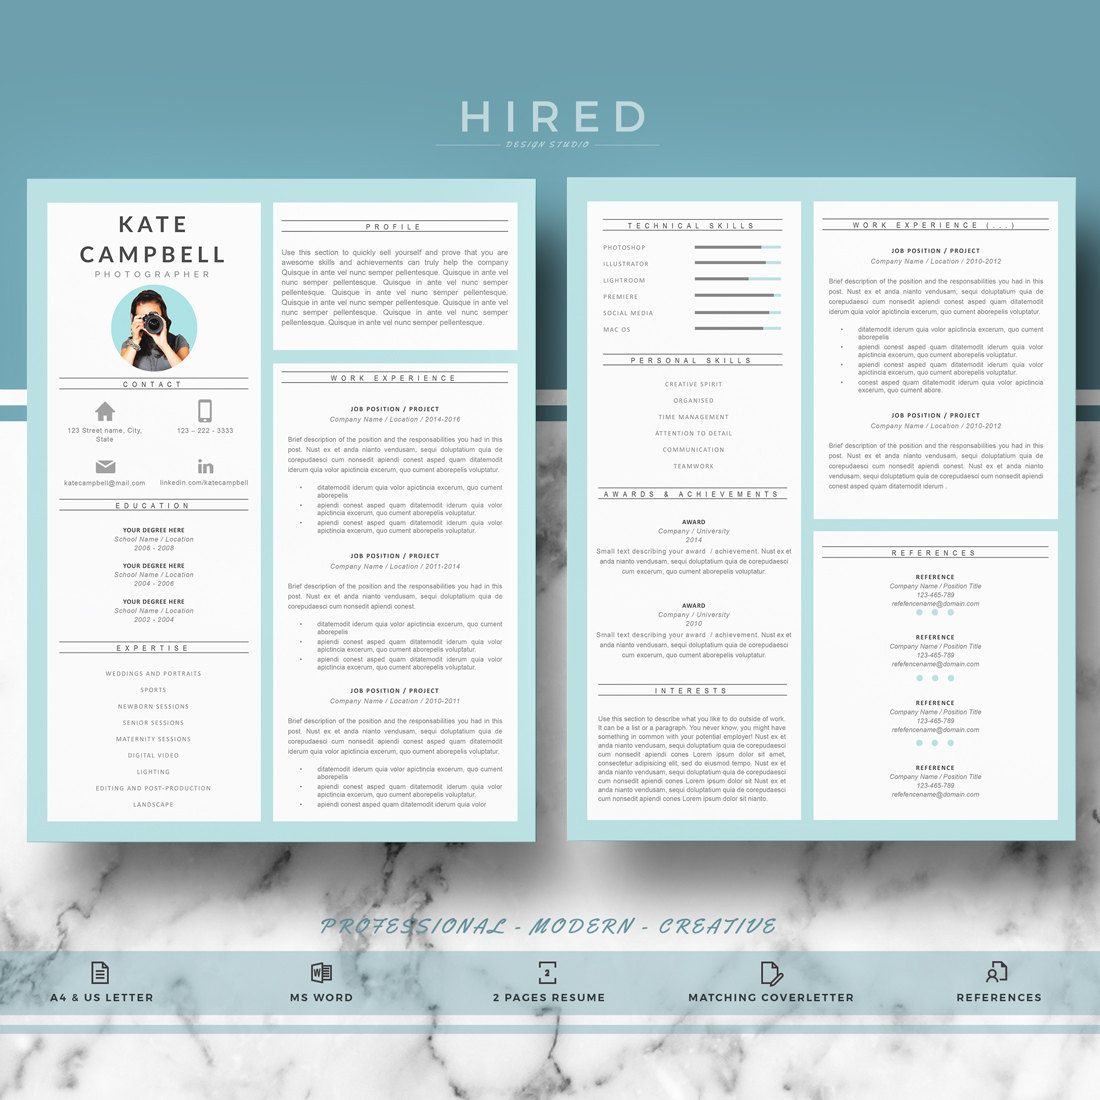 modern  u0026 creative resume  cv template  resume templates for word  pages  resume  cv   cover